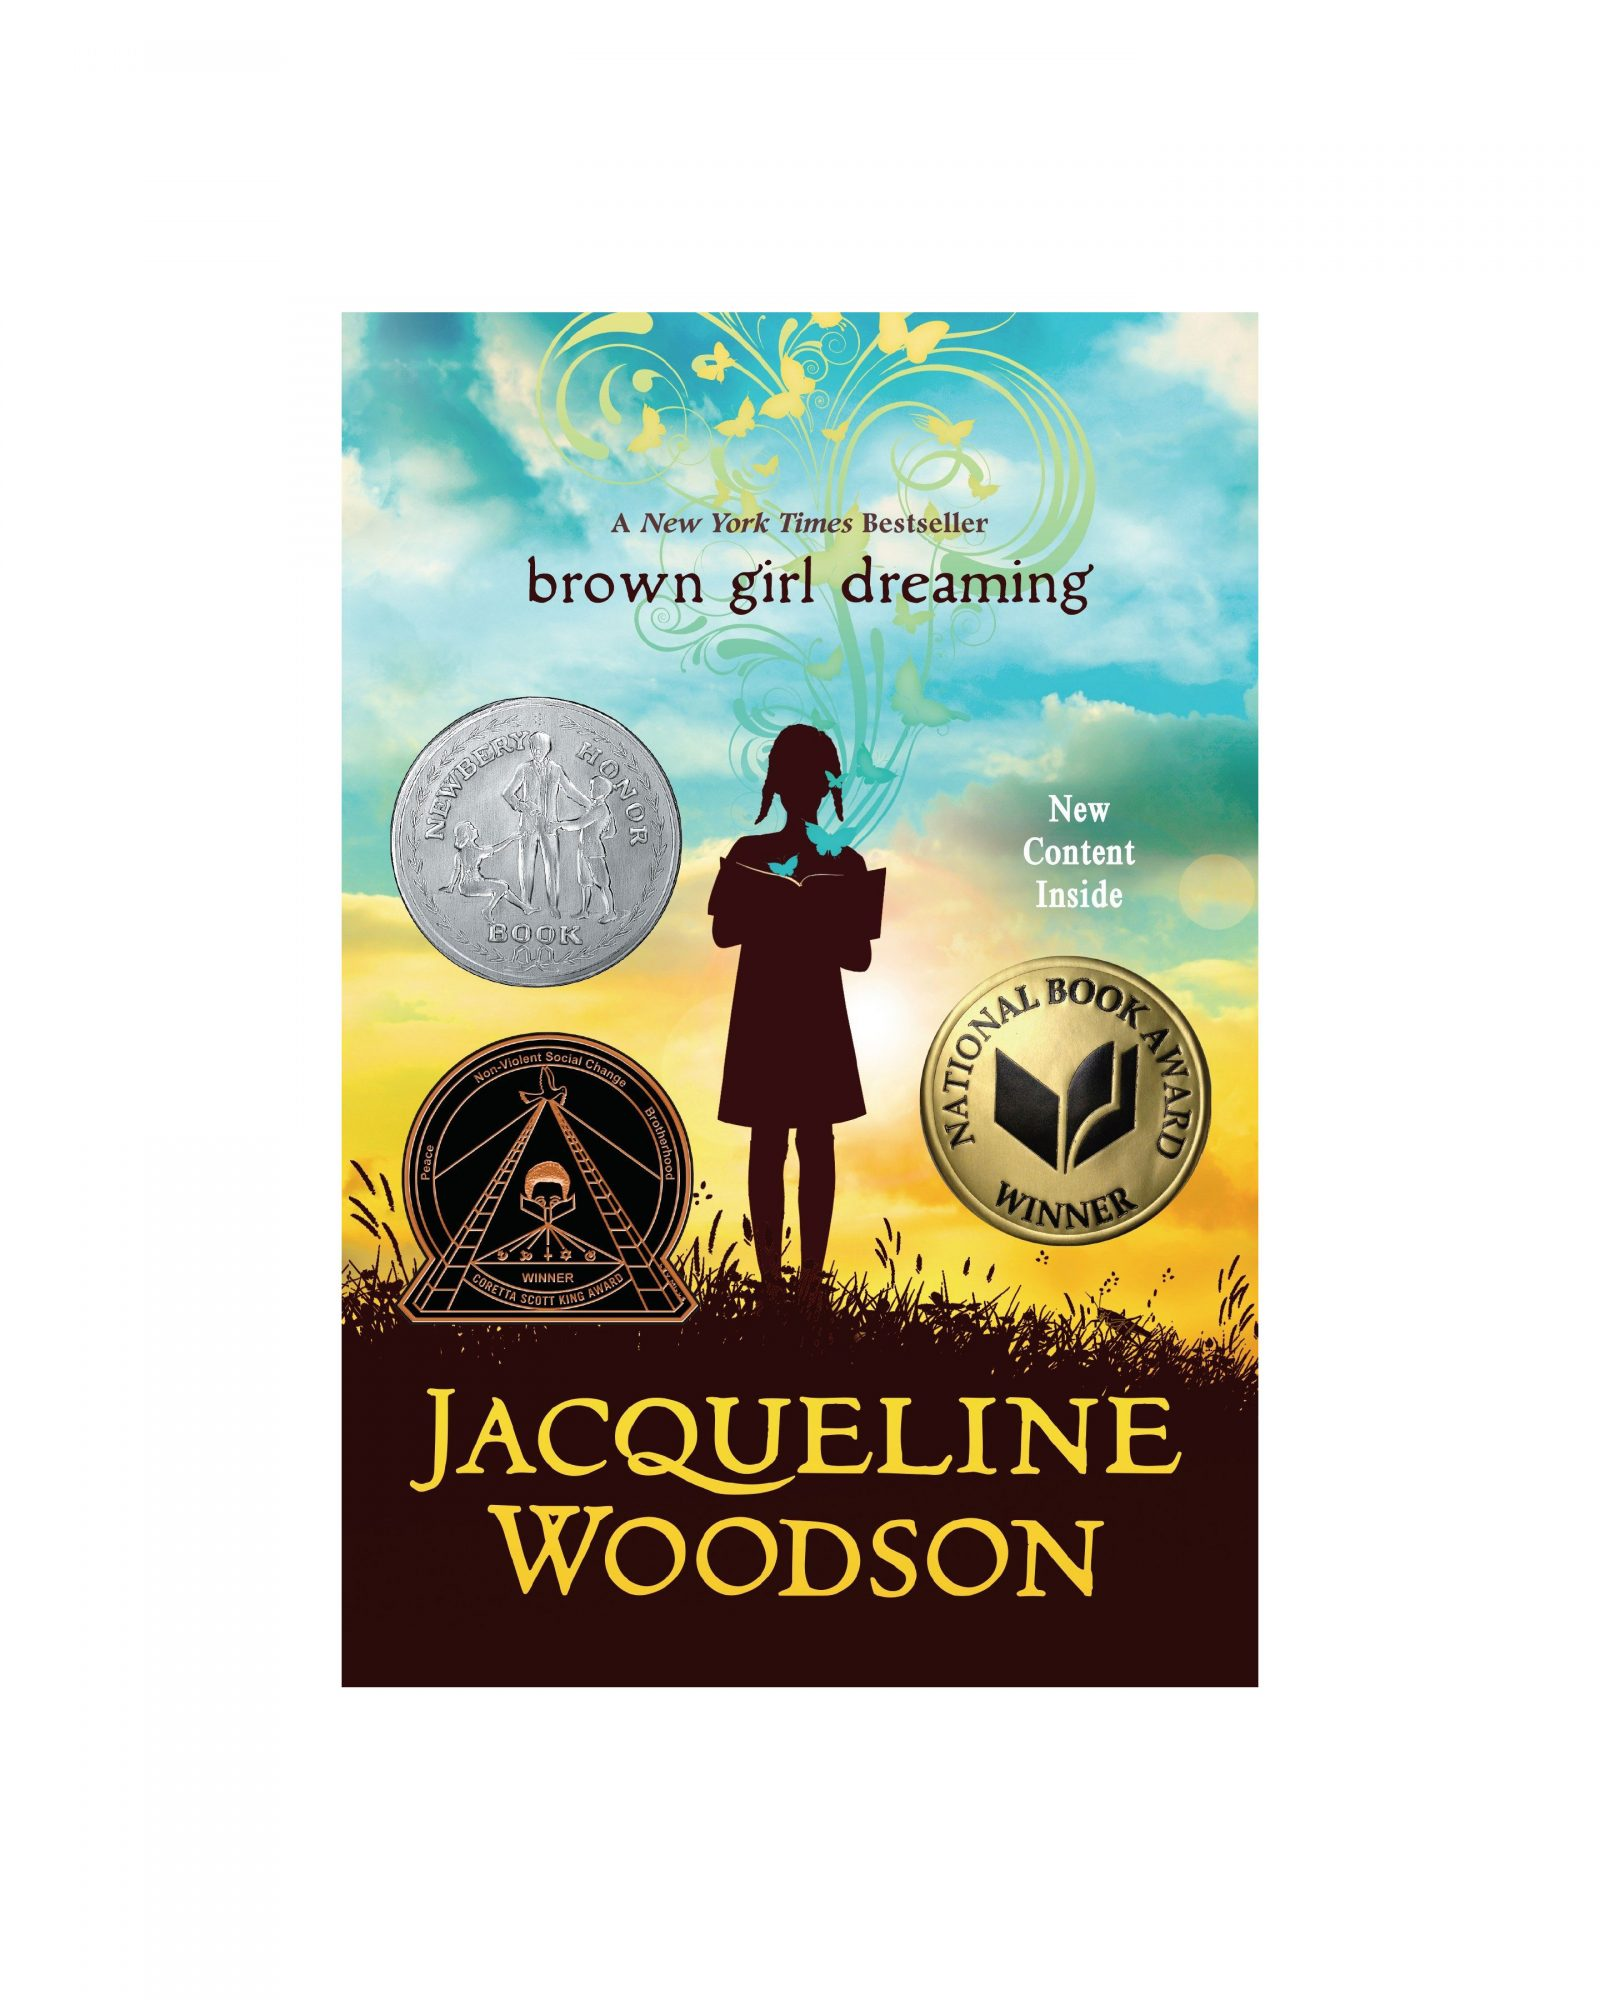 Brown Girl Dreaming, by Jacqueline Woodson